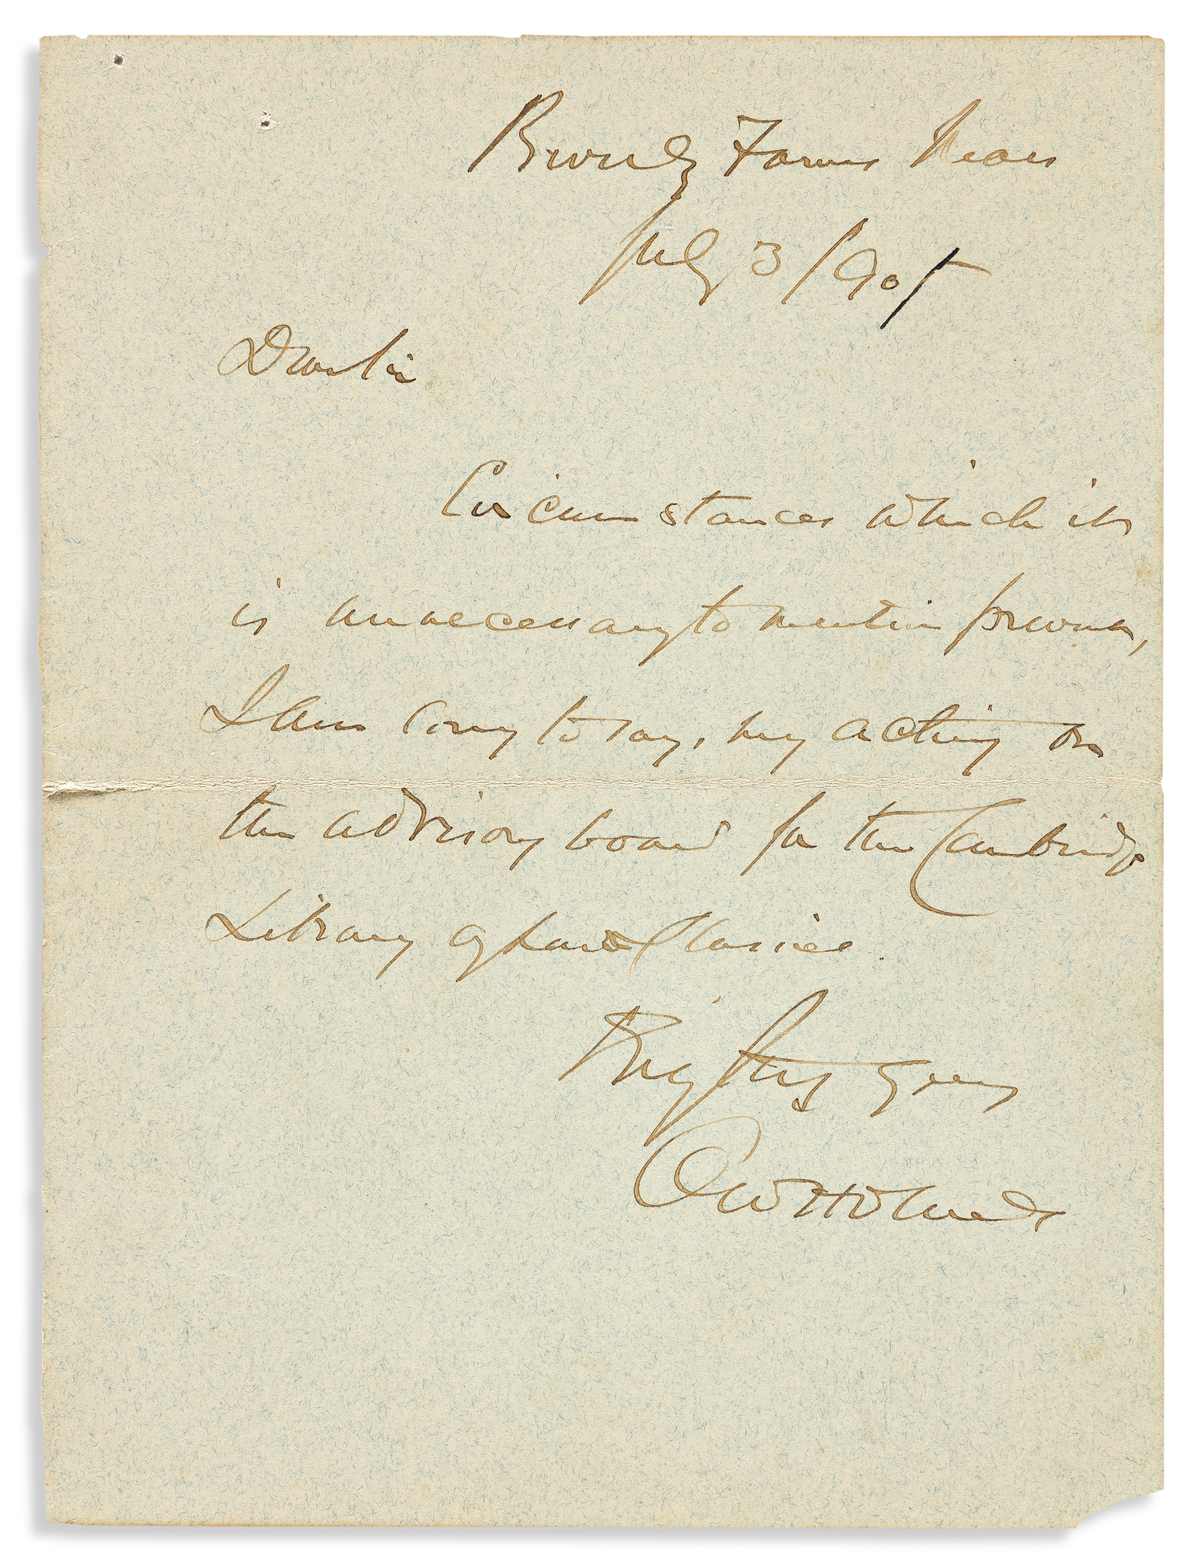 (SUPREME COURT.) HOLMES, OLIVER WENDELL; JR. Autograph Letter Signed, OWHolmes, to Dear Sir, declining an invitation.